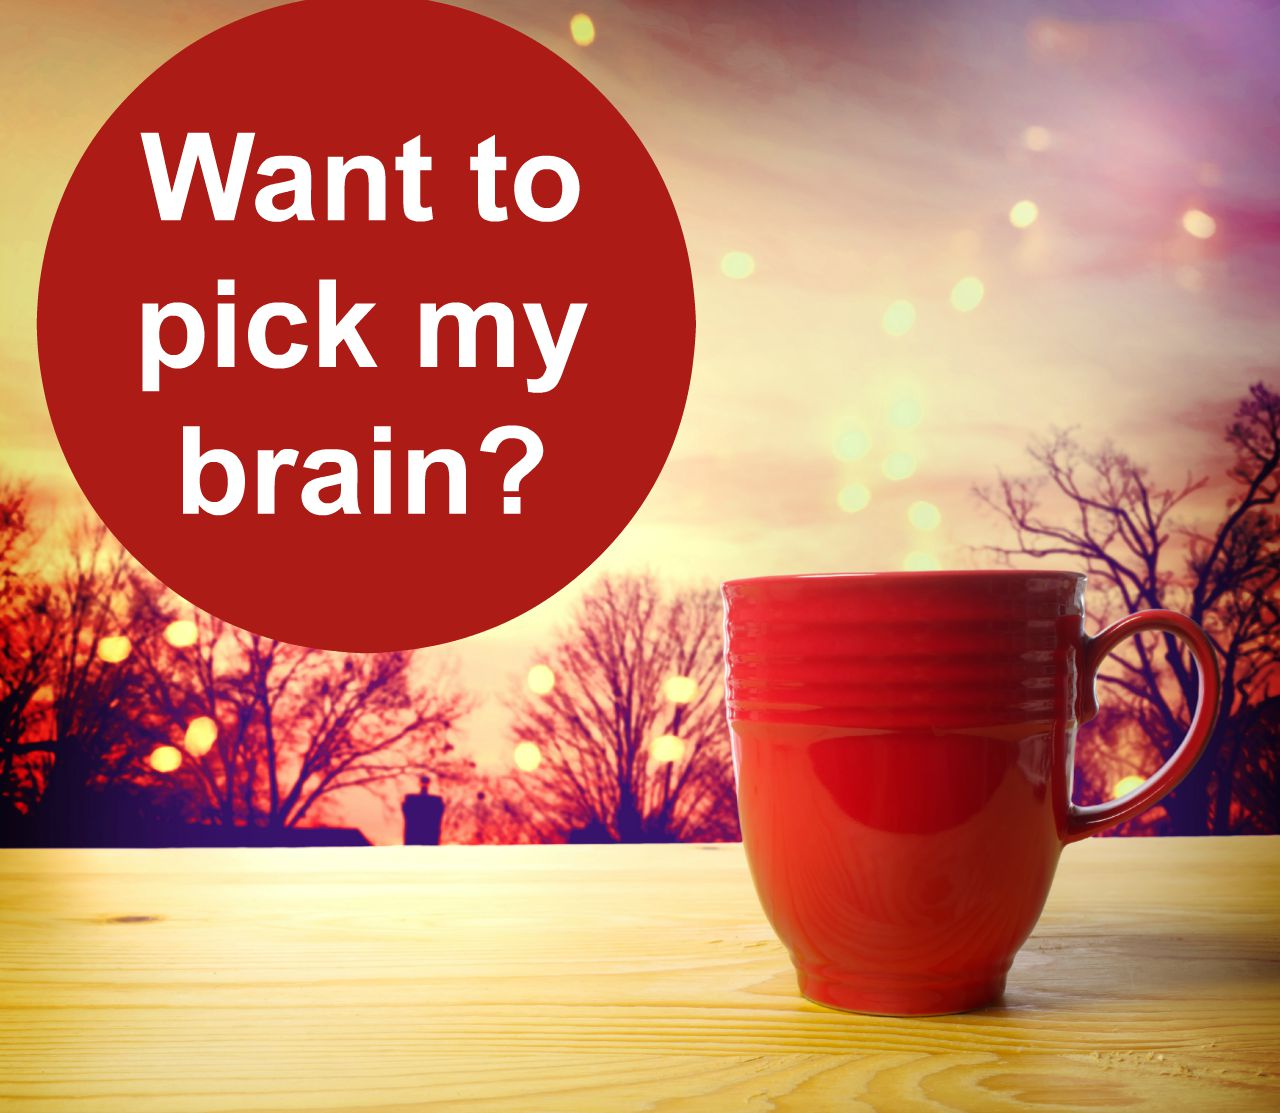 Book a pick my brain session with Clare Josa